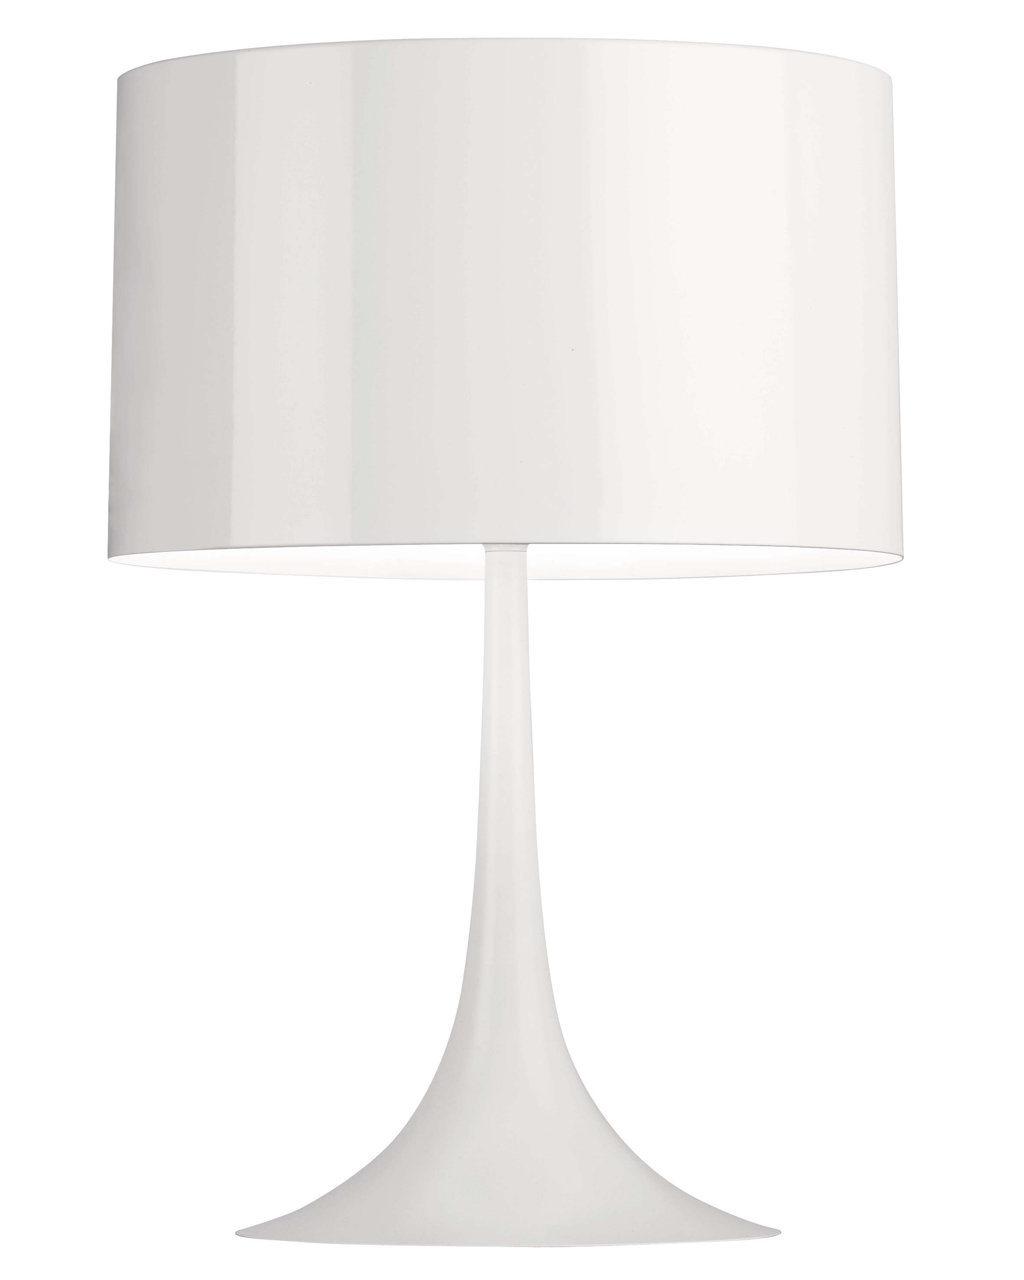 Hay Lounge Sessel Flos Spun Light T2 Shop I Design-bestseller.de